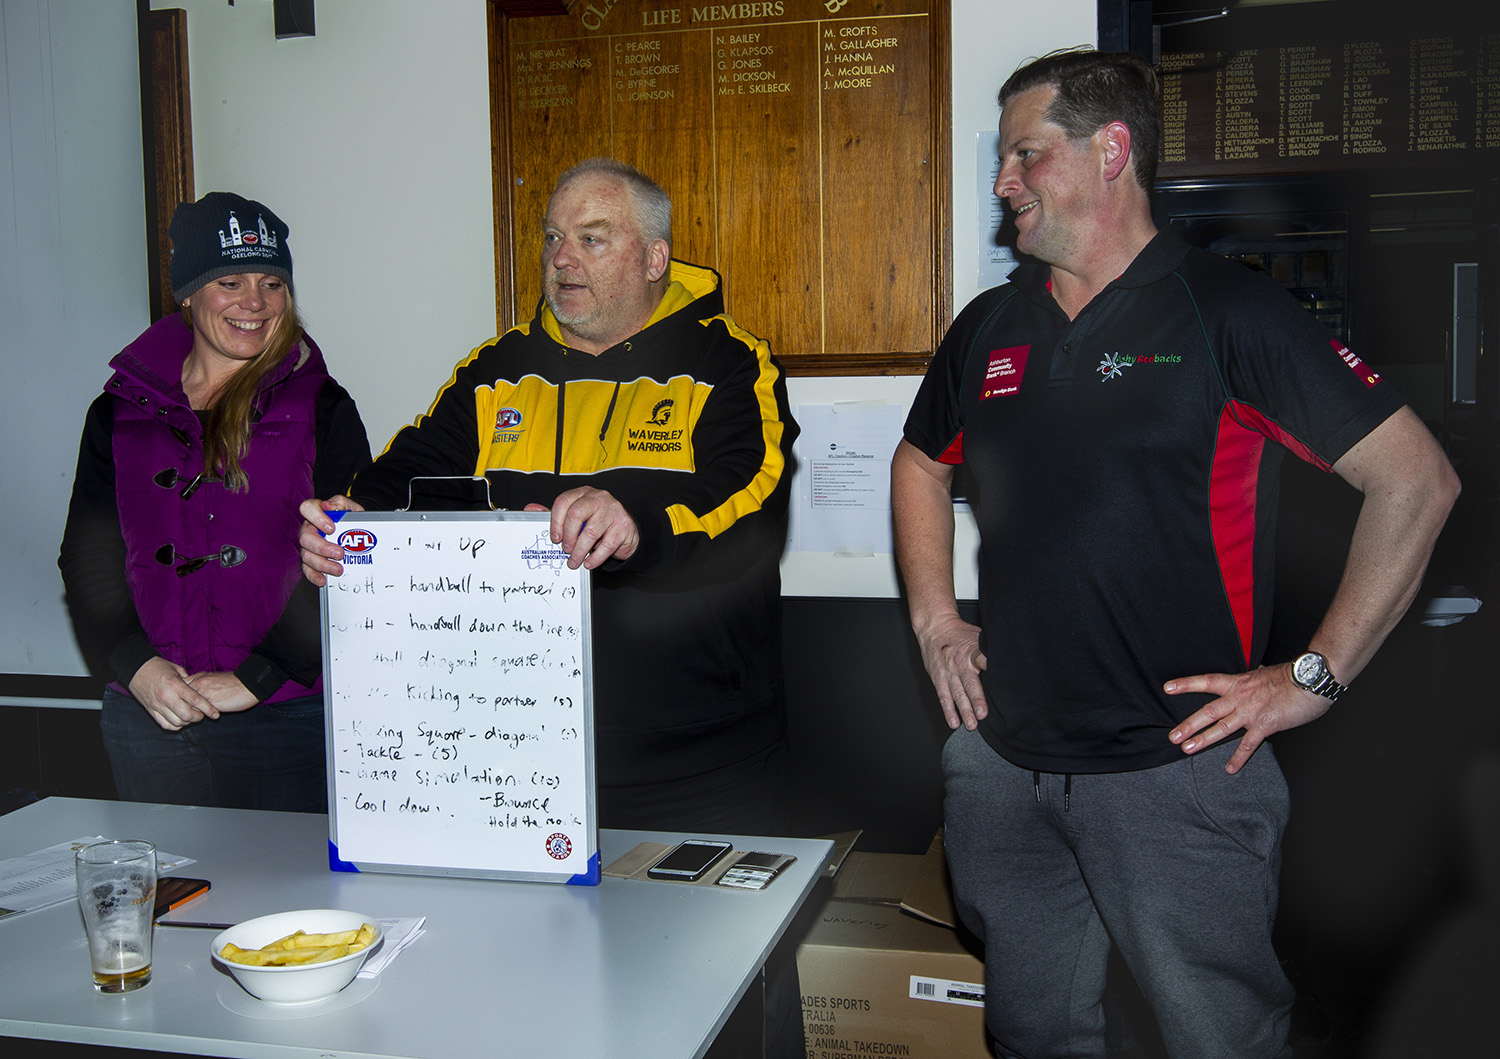 Competition coordinator Jill Chalmers with the Waverley Warriors coaching panel - coach Peter Nash and assistant coach Andrew Buckland - on the night of the jumper presentations. It proved to be a great night for the club and an emotional night for the players!